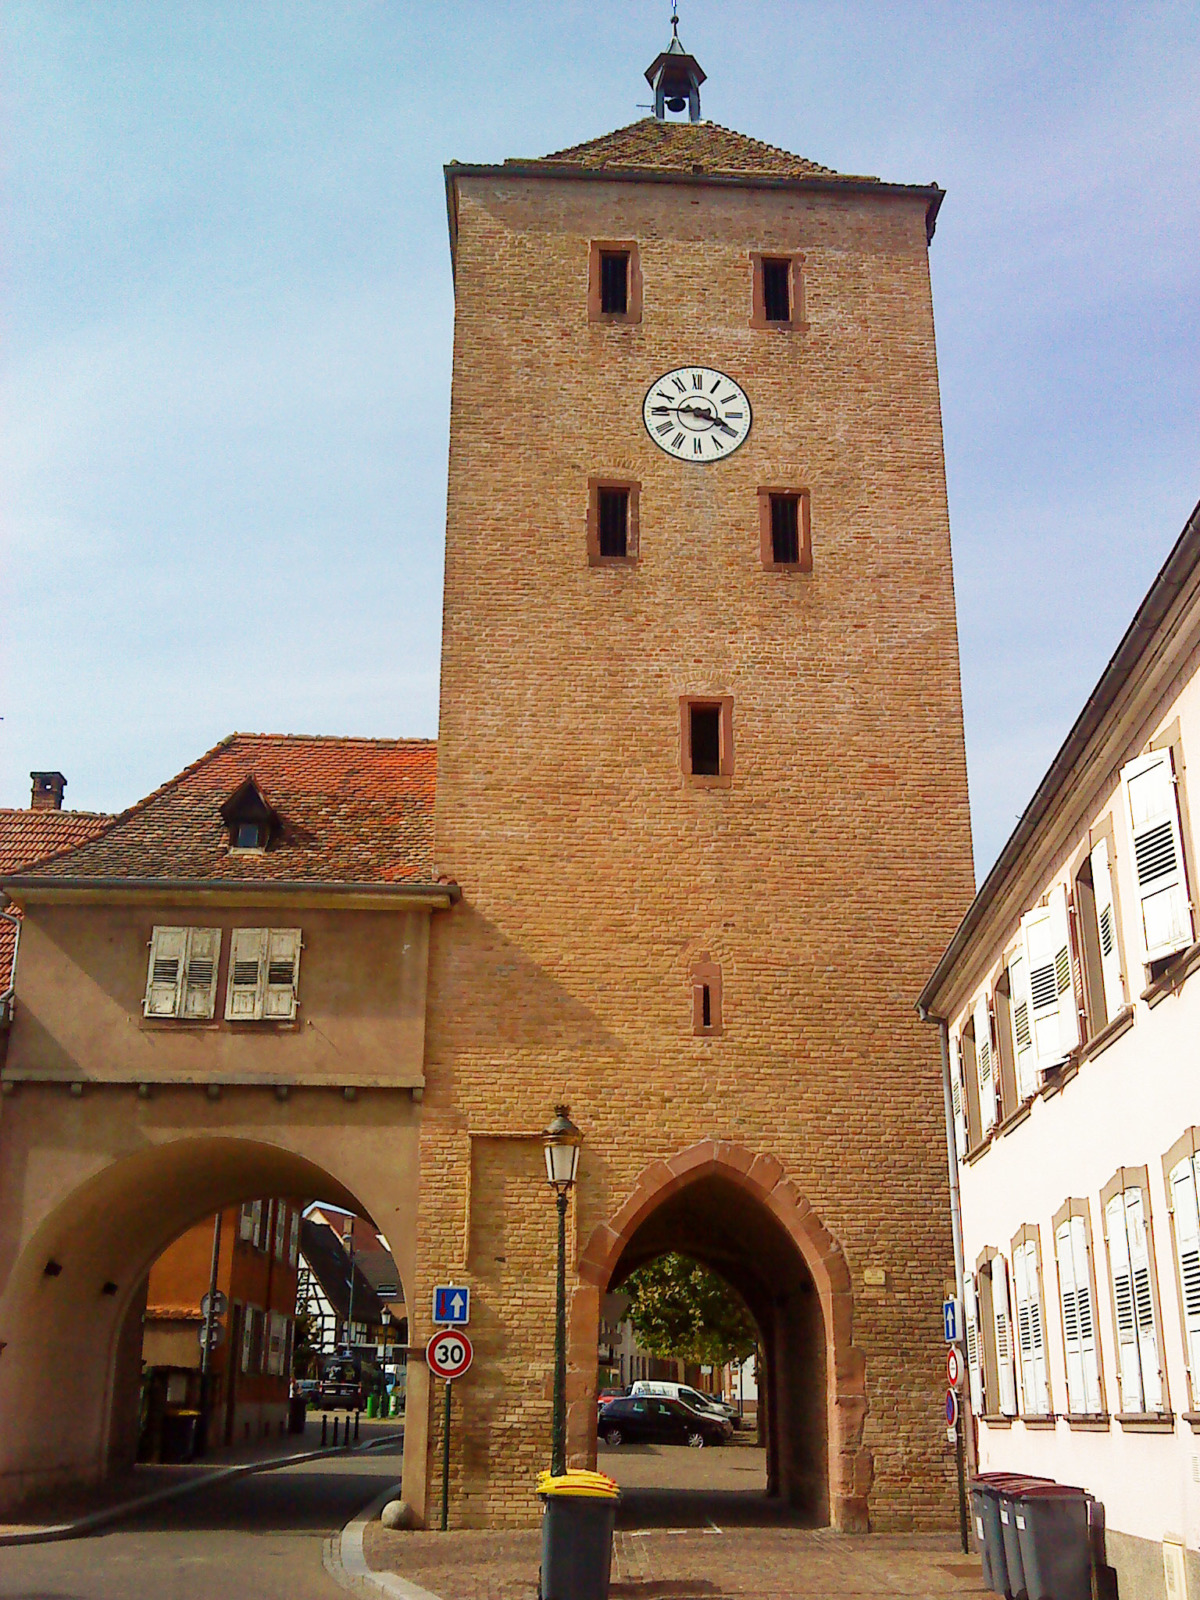 City gates of Alsace - Haguenau Porte des Chevaliers © Globeroutard - licence [CC BY-SA 3.0] from Wikimedia Commons